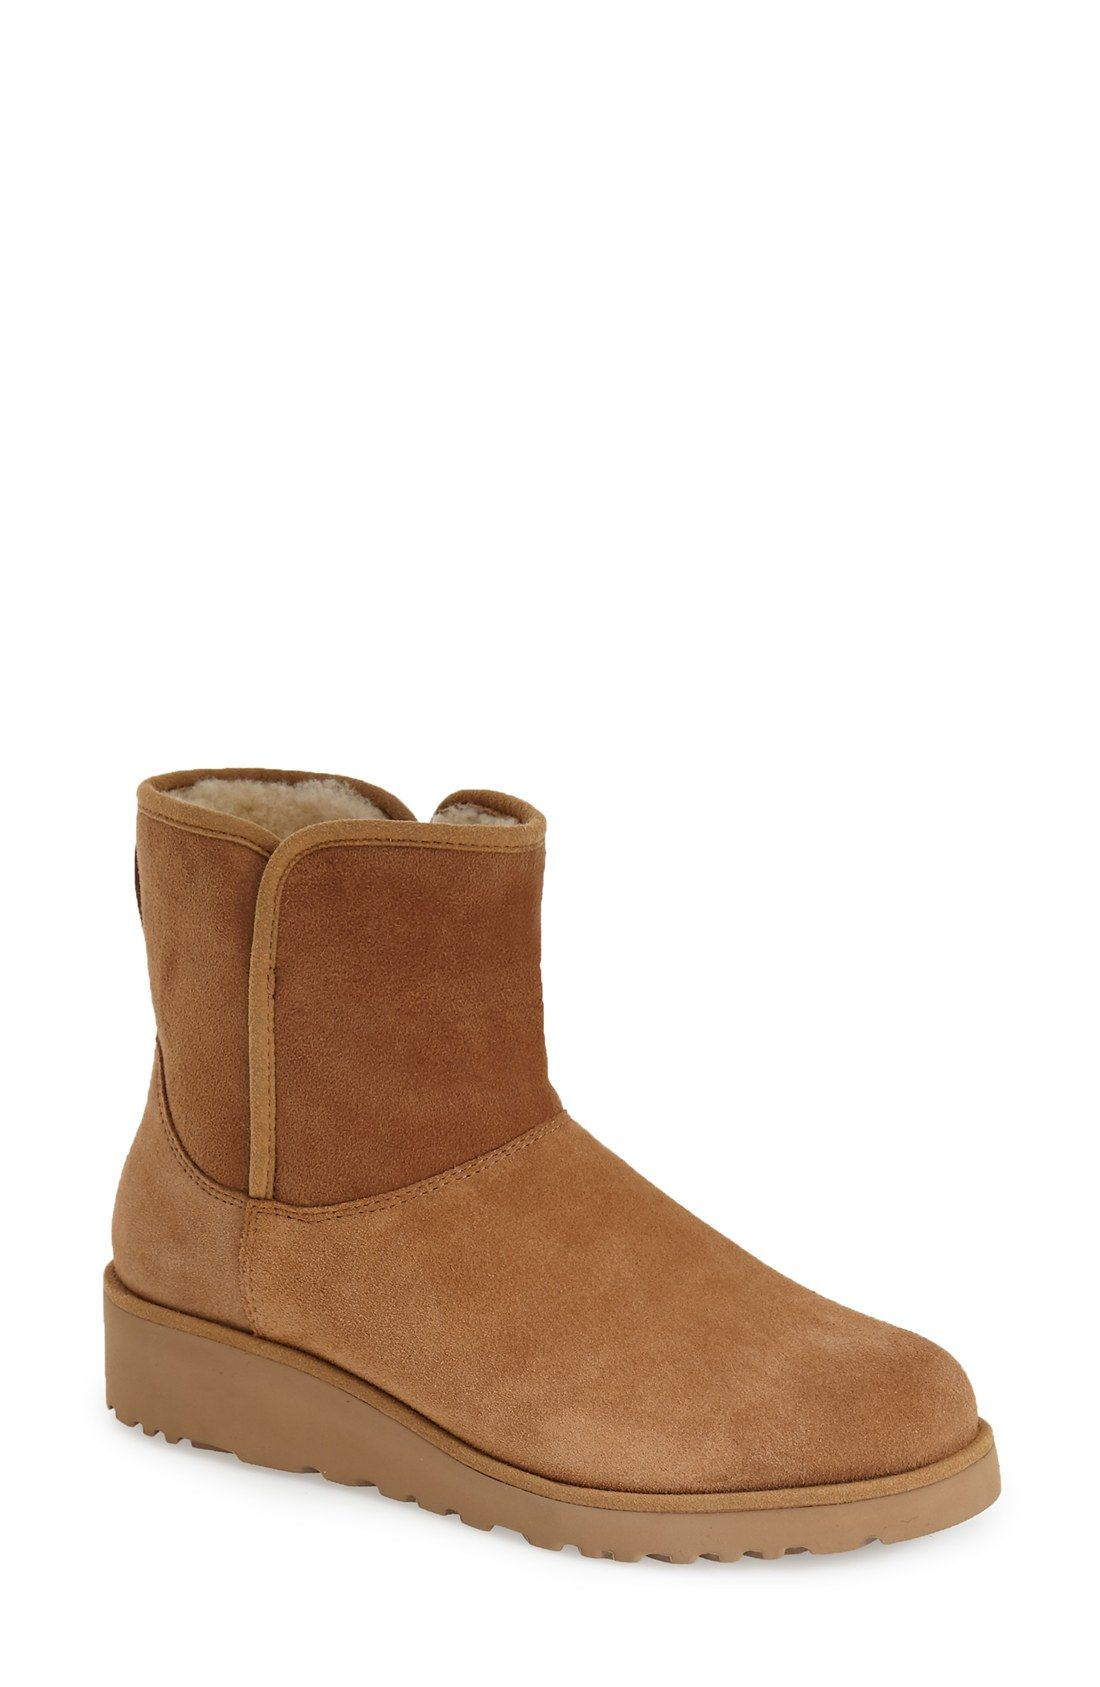 Our favorite UGG boot! The new classic slim has water-resistant suede and us